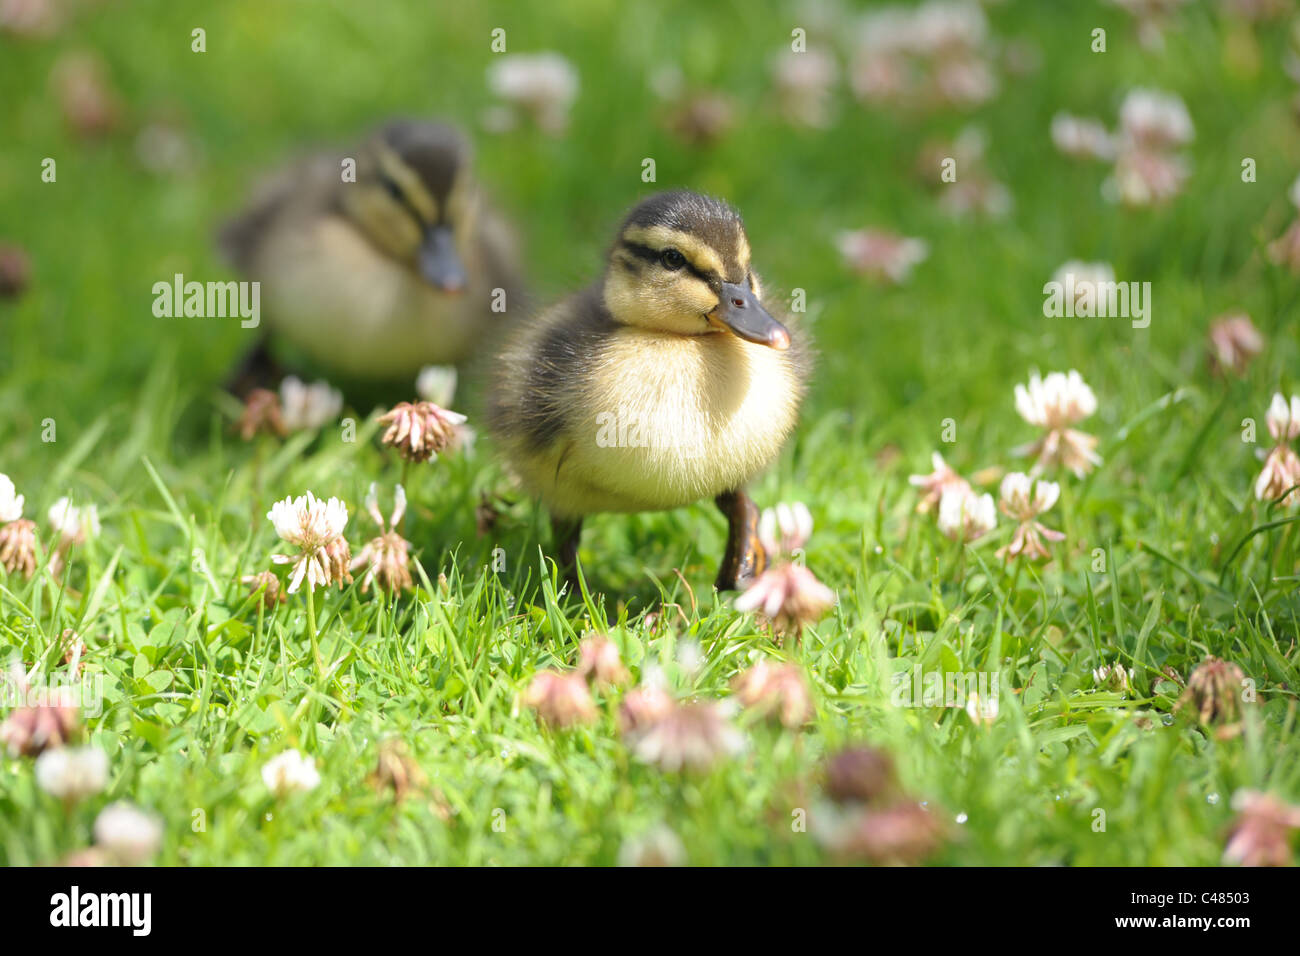 A close up of a pair of cute, baby ducklings walking through the grass.... - Stock Image